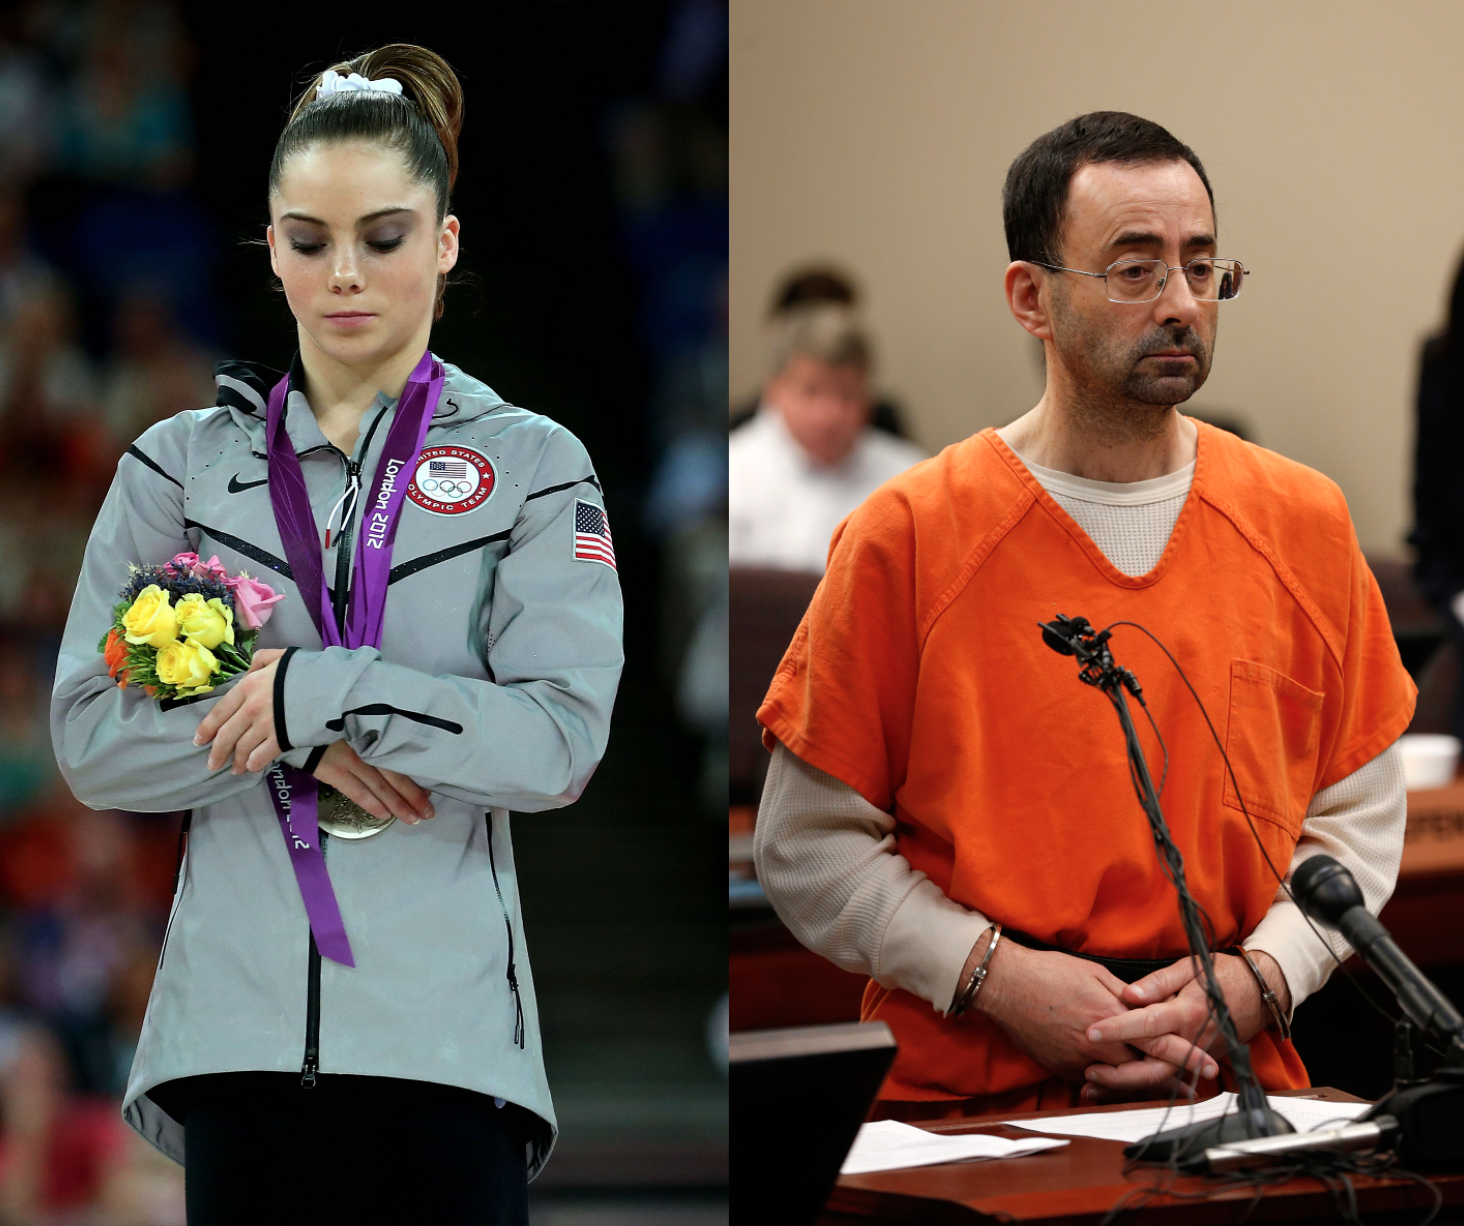 Larry was a monster. 'Gymnast McKayla Maroney speaks for first time about the sexual abuse of the medical team